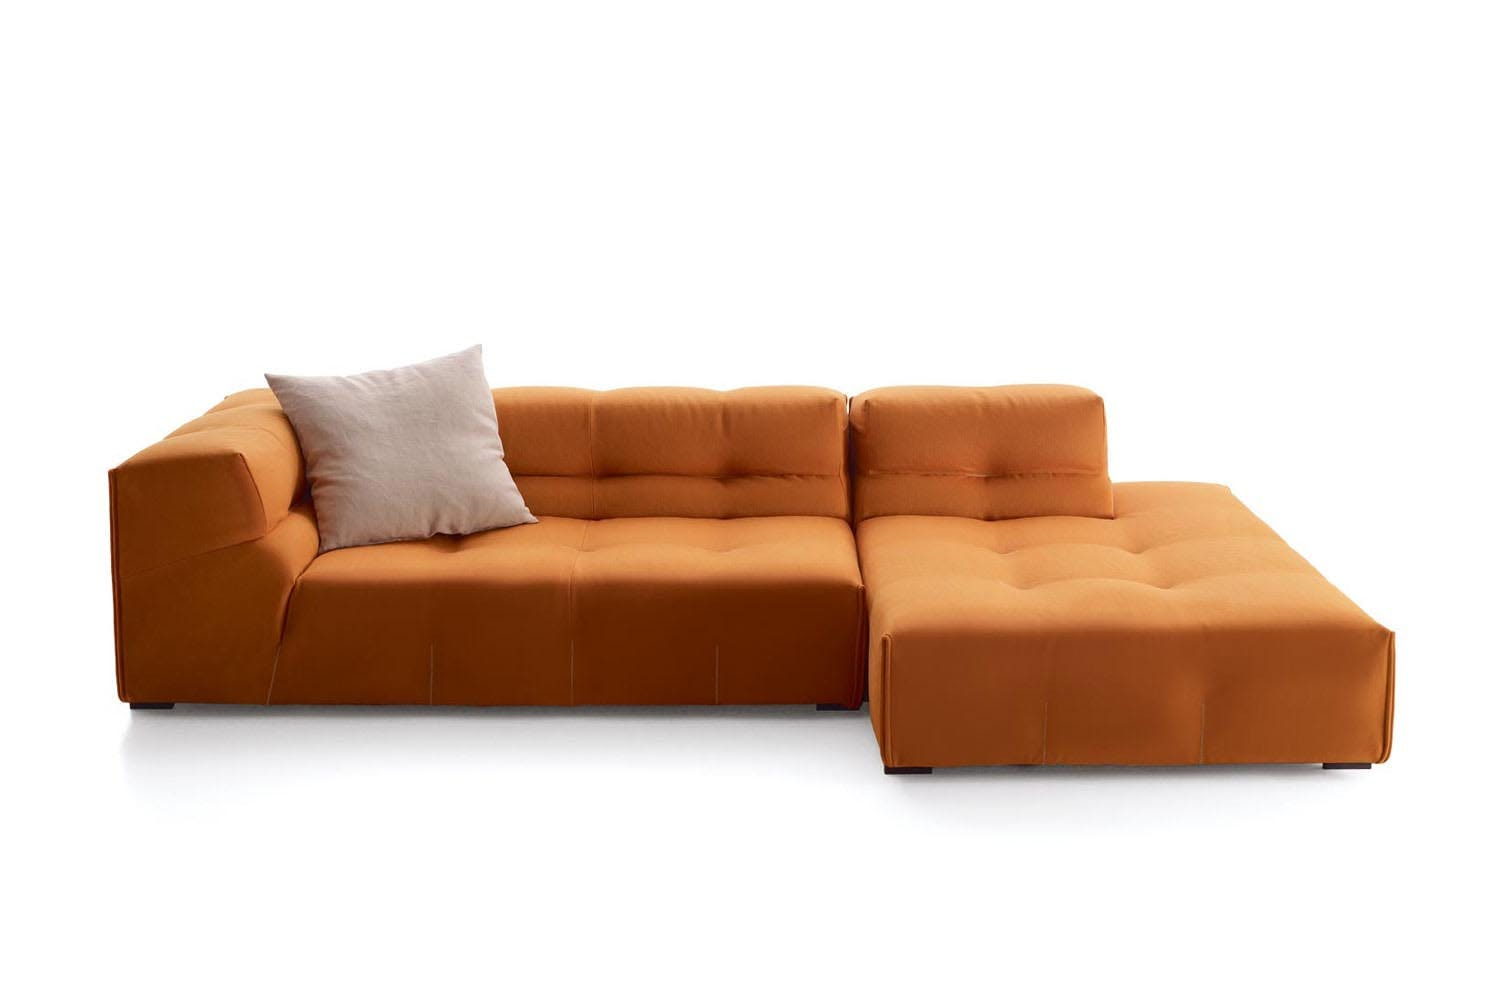 tufty too sofa by patricia urquiola for b b italia space